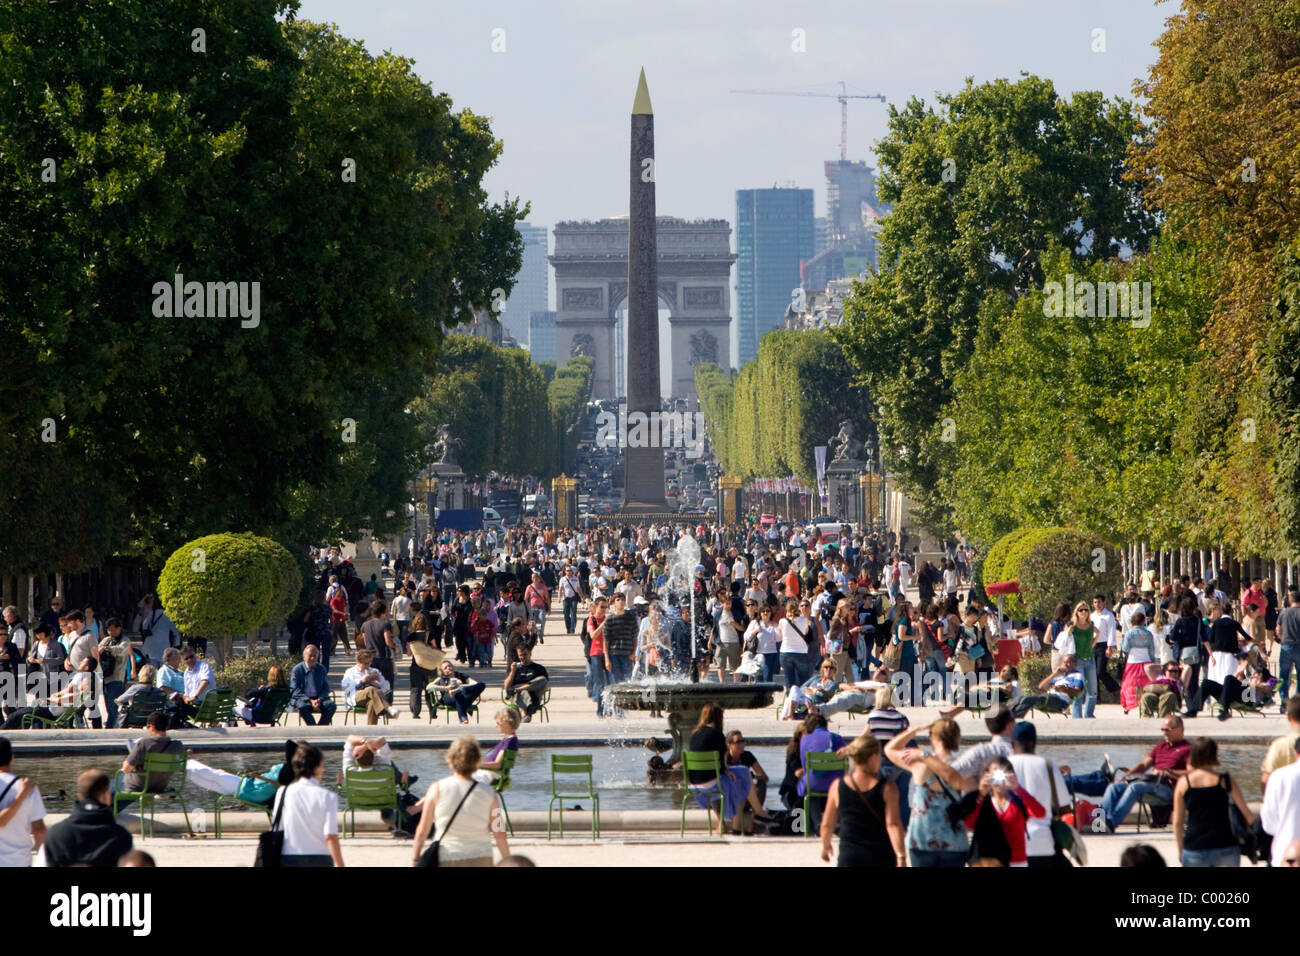 The Obelisk of Luxor and the Arch de Triomphe at the west end of the Avenue des Champs-Elysees in Paris, France. - Stock Image